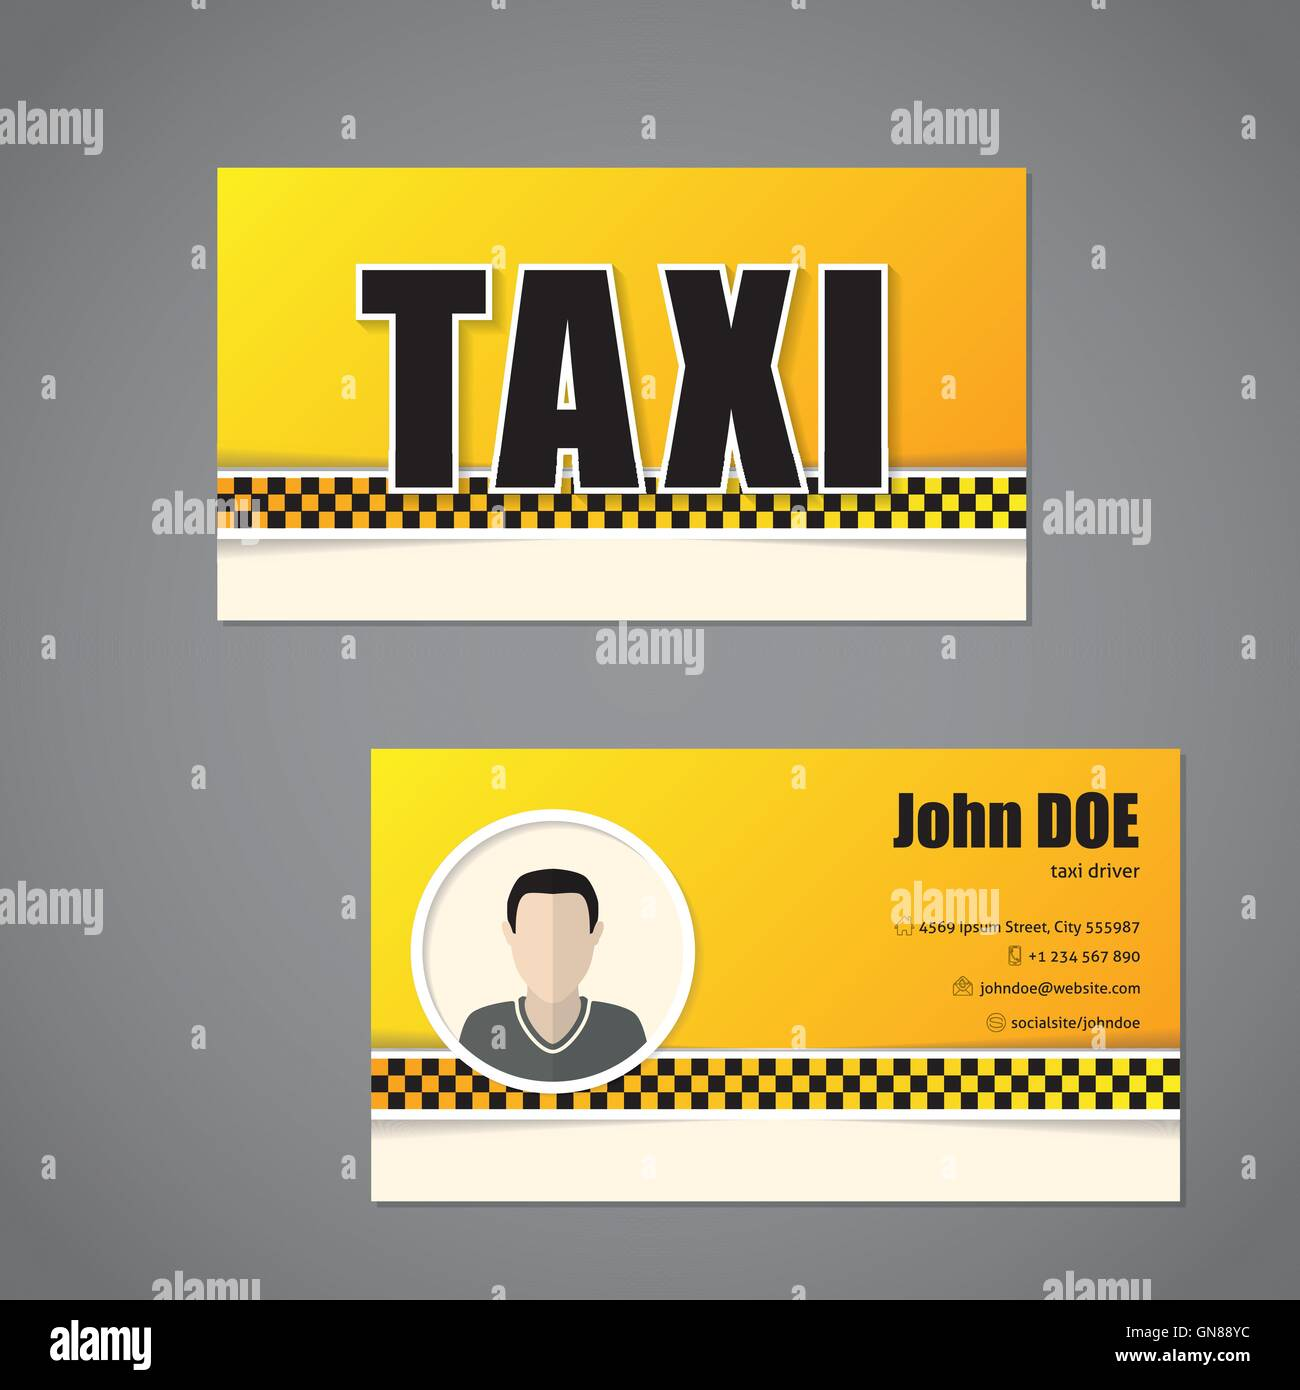 Taxi Business Card Template With Driver Photo Stock Vector